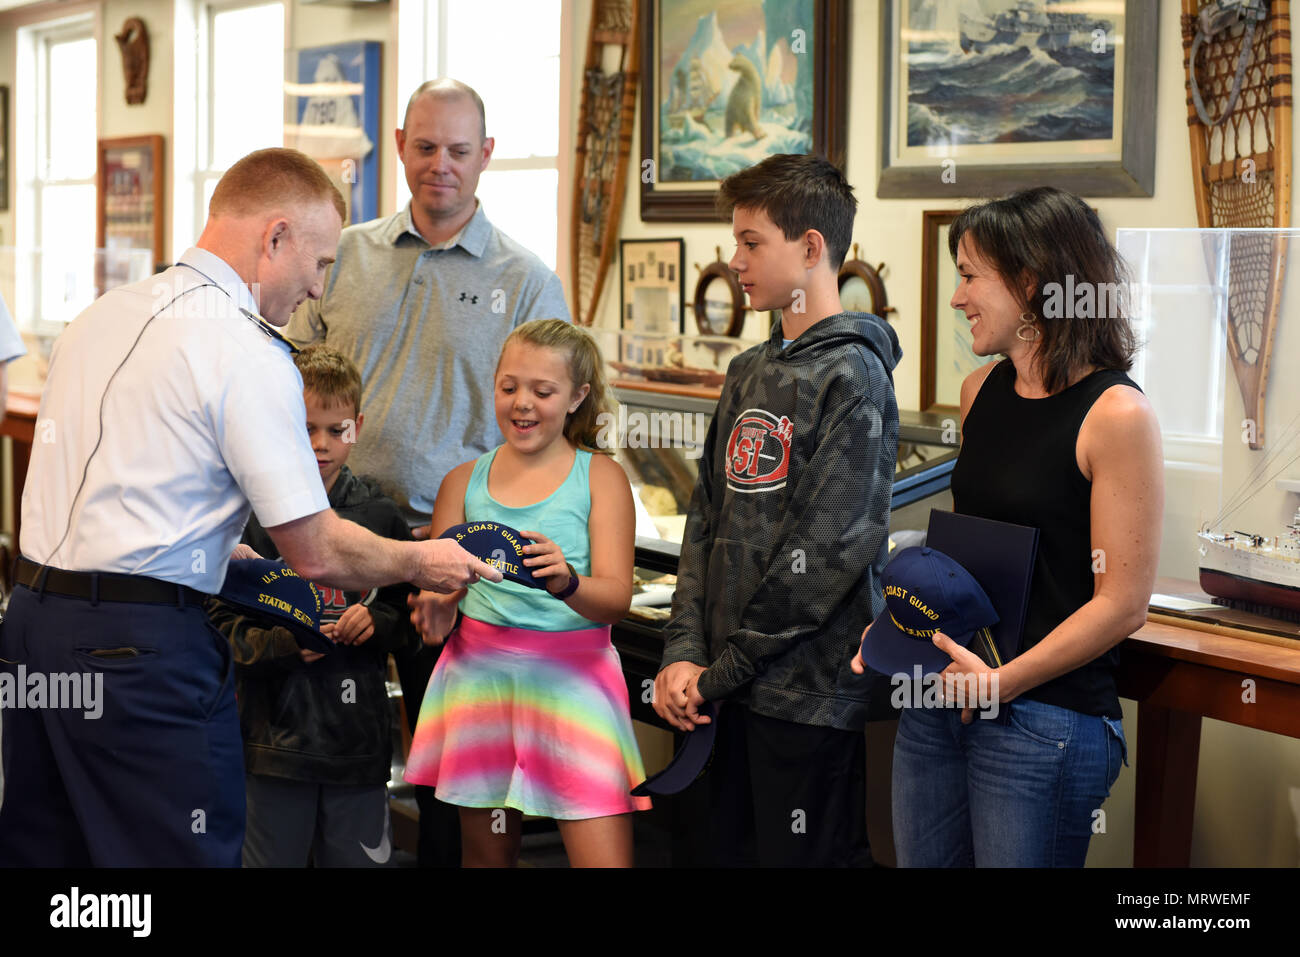 Rear Adm. David Throop, commander, Coast Guard 13th District, presents Darci Dawson and her family members with Coast Guard Station Seattle hats after giving Dawson the Meritorious Public Service Award at Base Seattle, July 7, 2017. Dawson was recognized for her selfless actions after she saved the life of a drowning toddler, Kaden Sluggett, on July 9, 2016, while on vacation in Montana. U.S. Coast Guard photo by Petty Officer 2nd Class Ali Flockerzi. - Stock Image